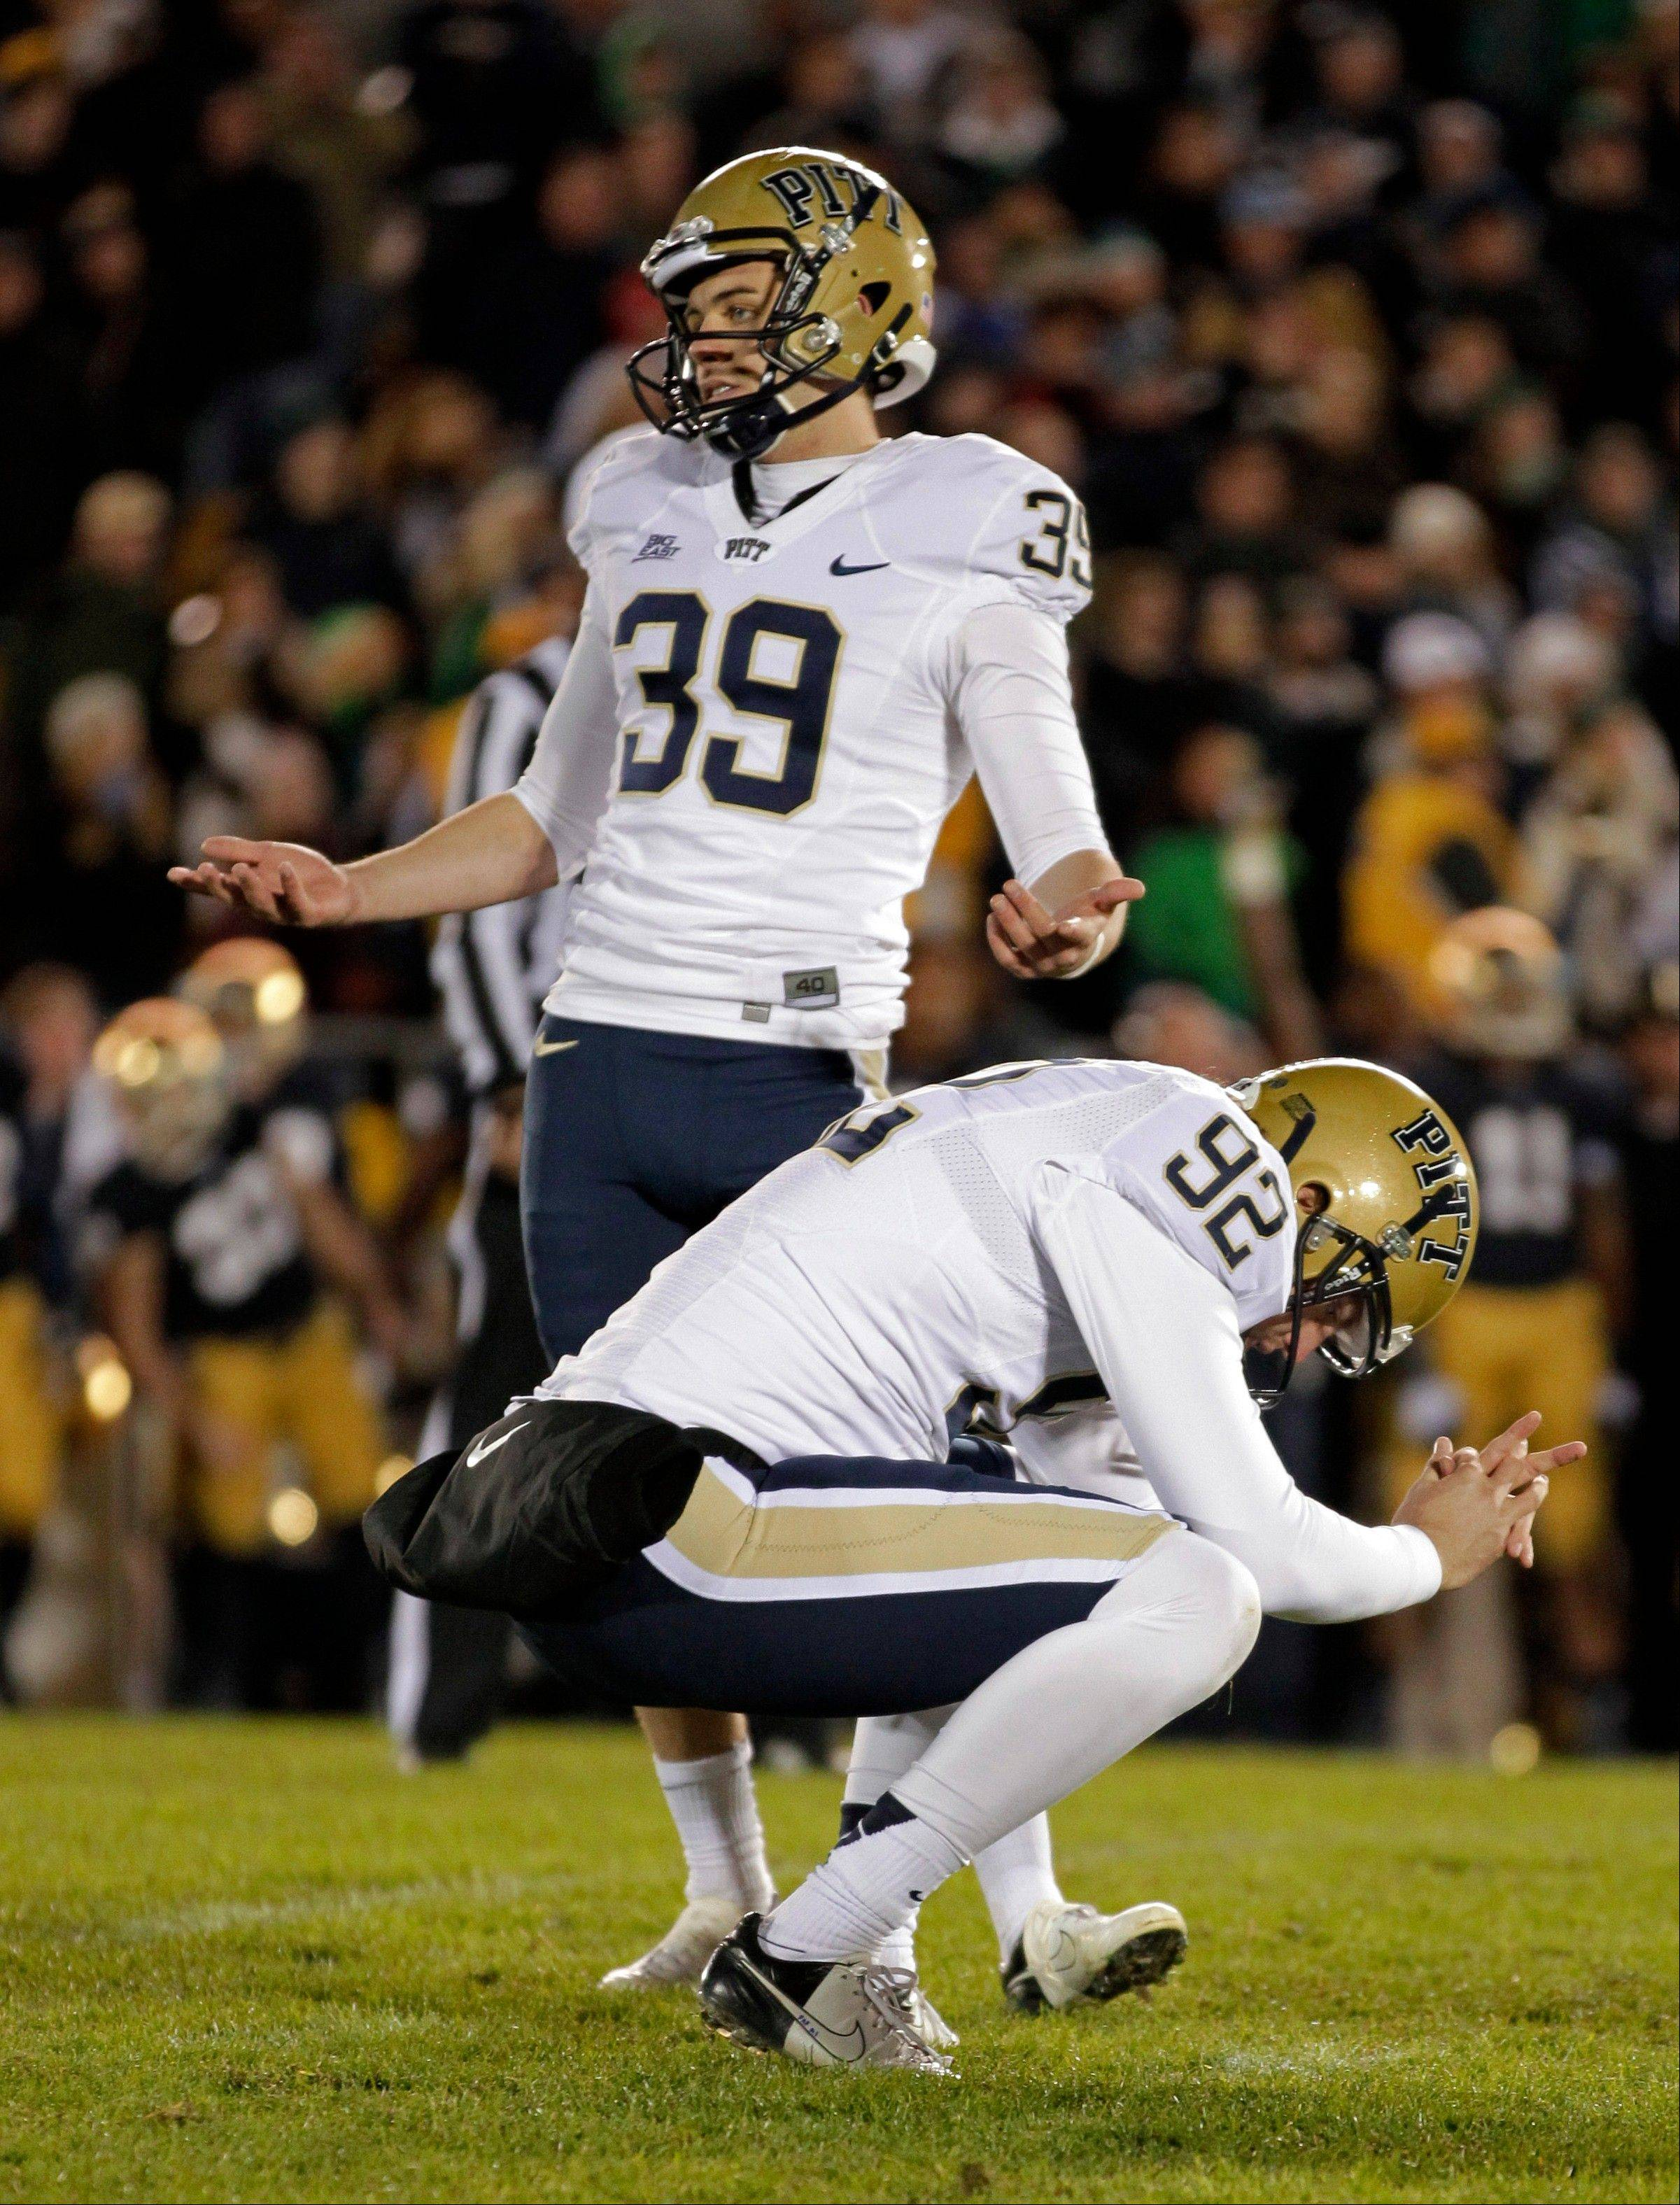 Pittsburgh kicker Kevin Harper (39) and holder Matt Yoklic react after Harper missed what would have been the game-winning field goal in the second overtime period Saturday against Notre Dame. Notre Dame defeated Pittsburgh 29-26 in triple overtime.